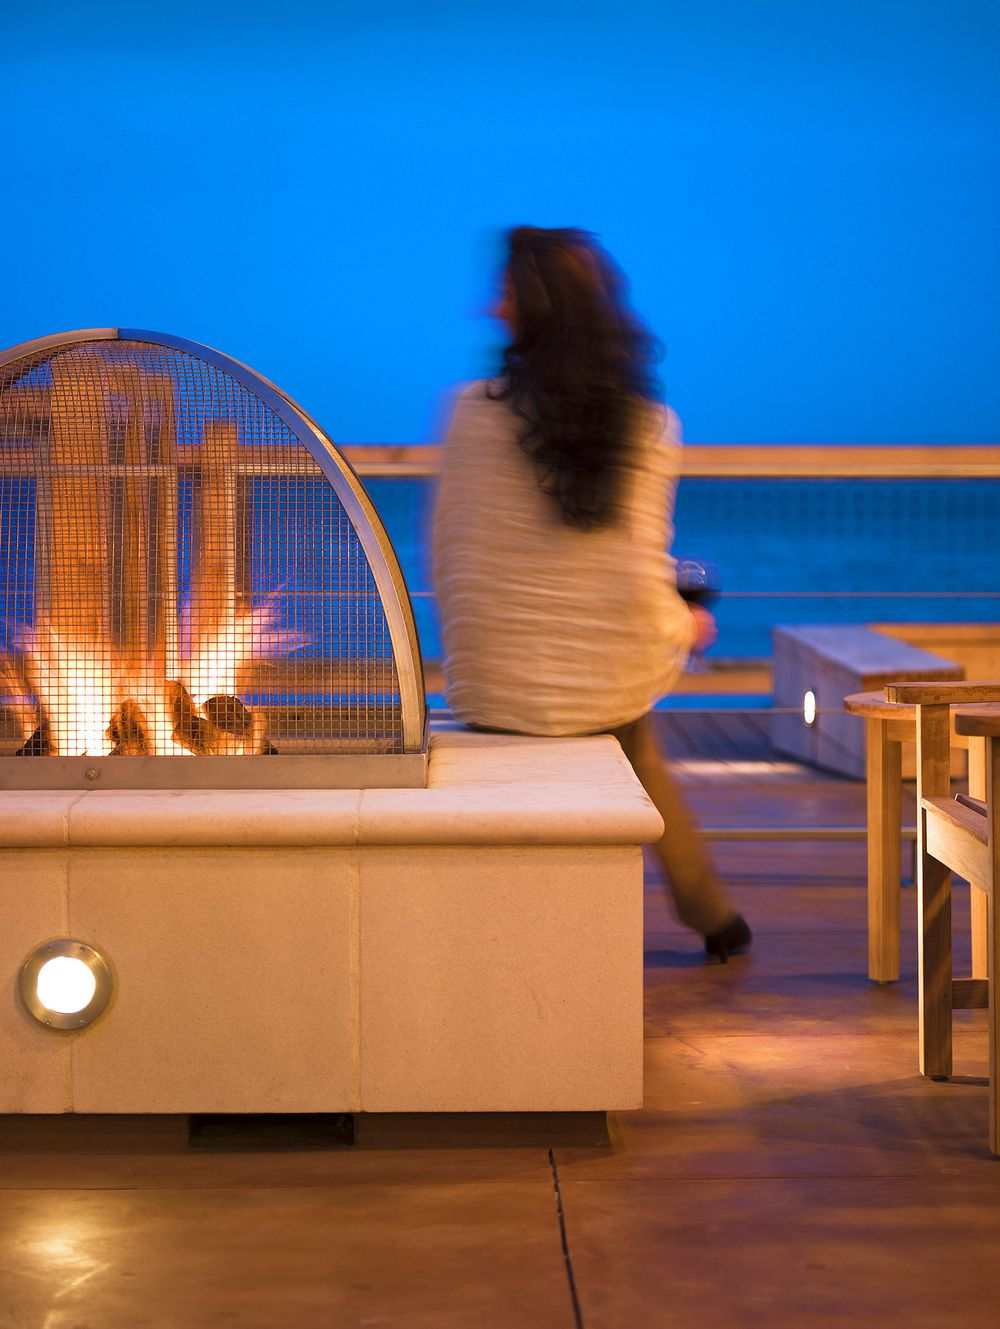 John-Sutton-Photography-InterContinental Hotel Monterey Bay Firepit